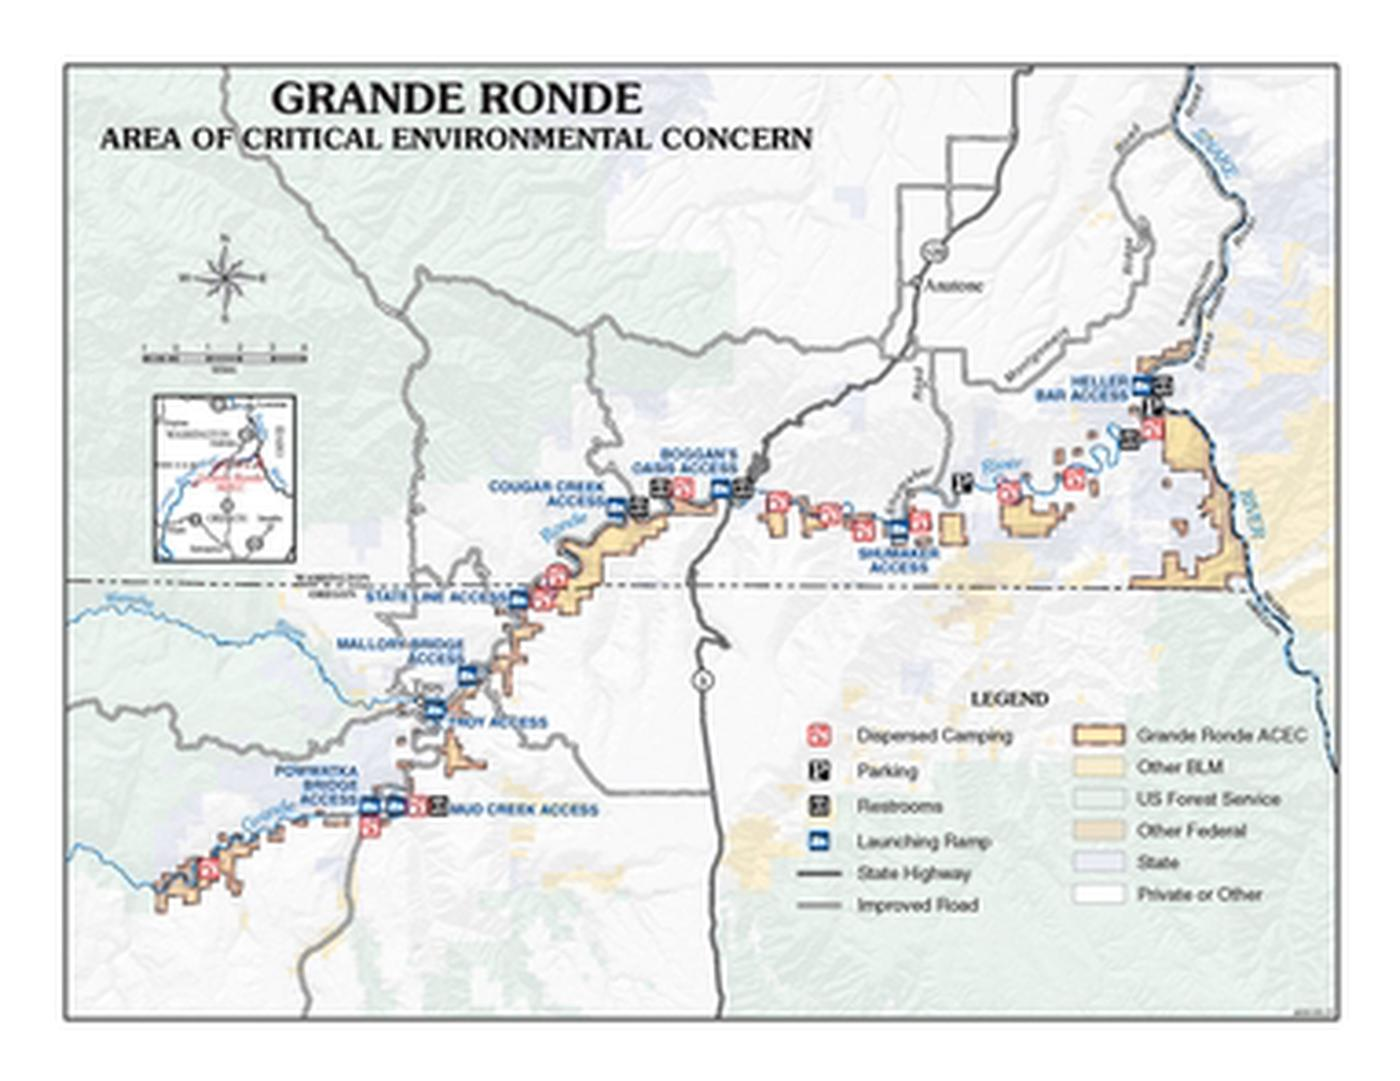 Grande Ronde Wild and Scenic RiverMap of the Grande Ronde Area of Critical Environmental Concern.